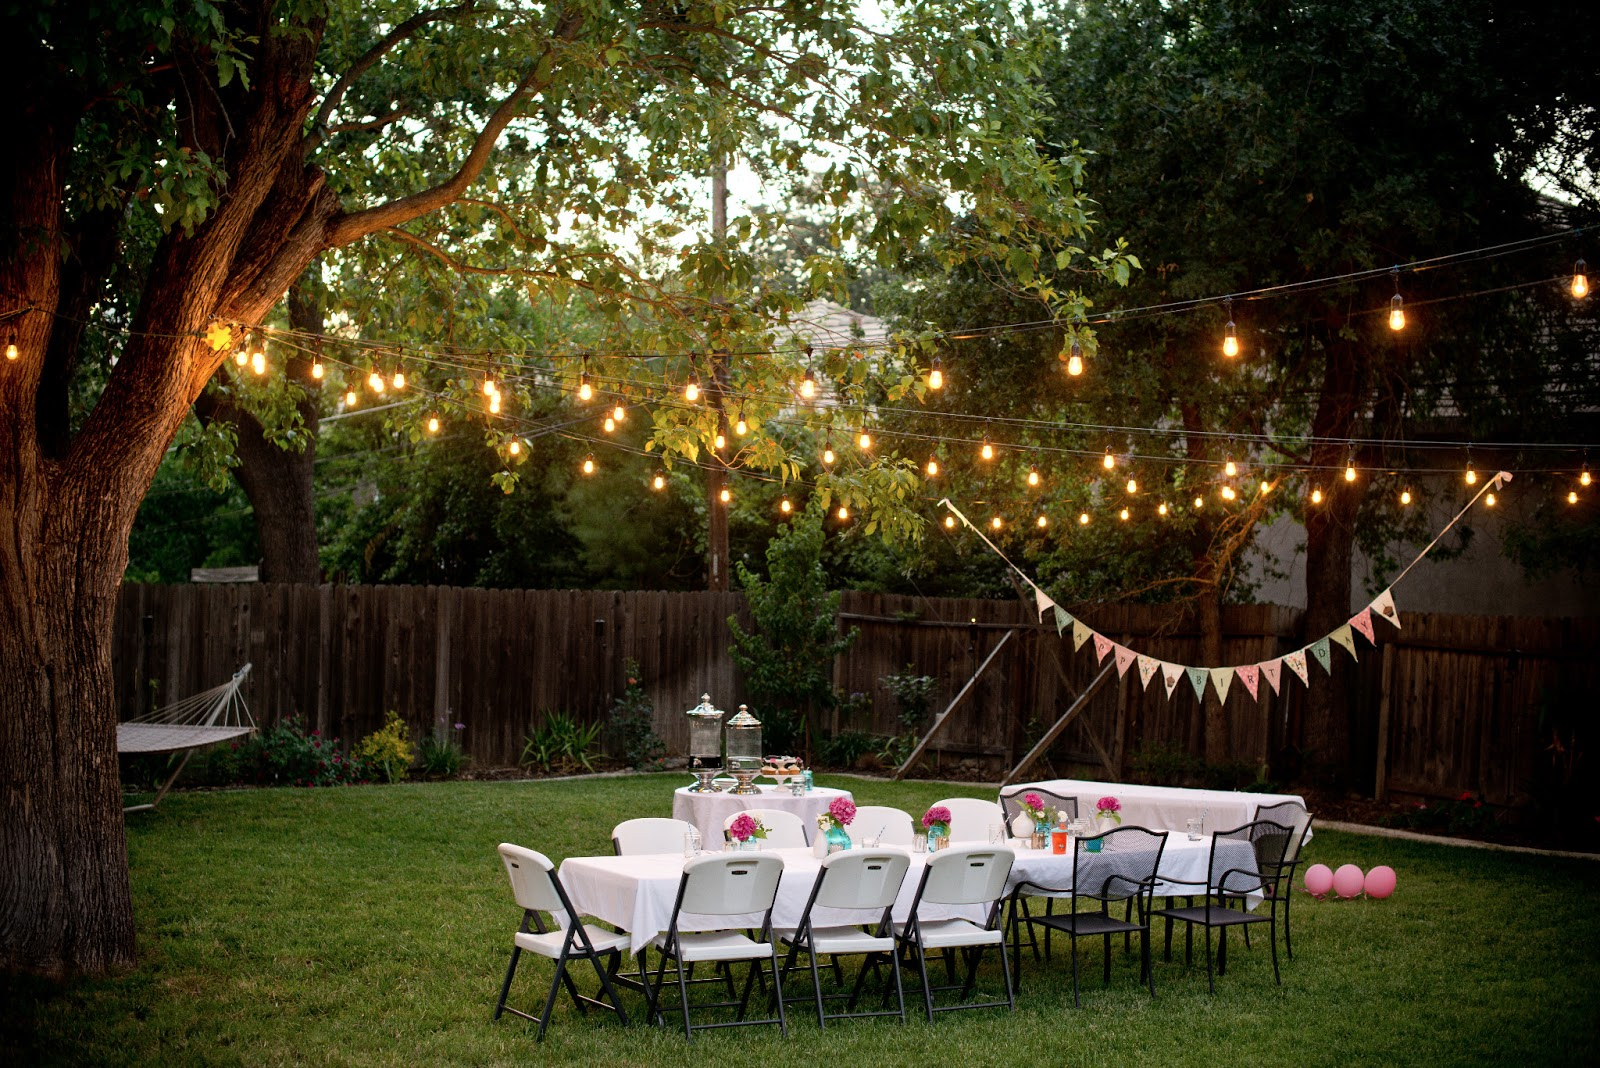 Diy Outdoor Party Lighting Hang Uncategorized Outdoor Party Lights with 15 Some of the Coolest Designs of How to Build Backyard Party Lighting Ideas